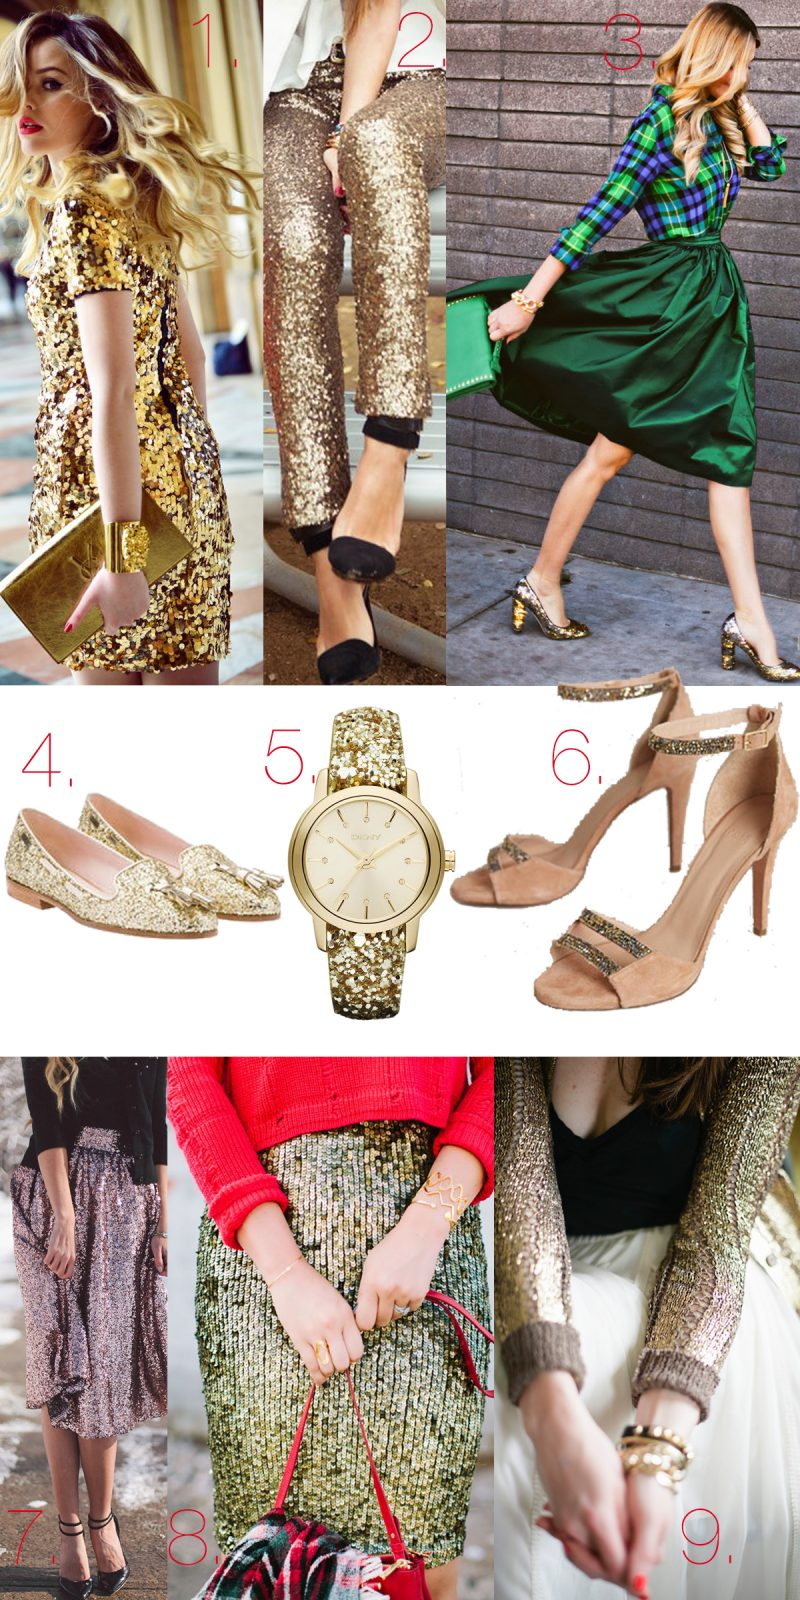 Silvester Outfits und Accessoires